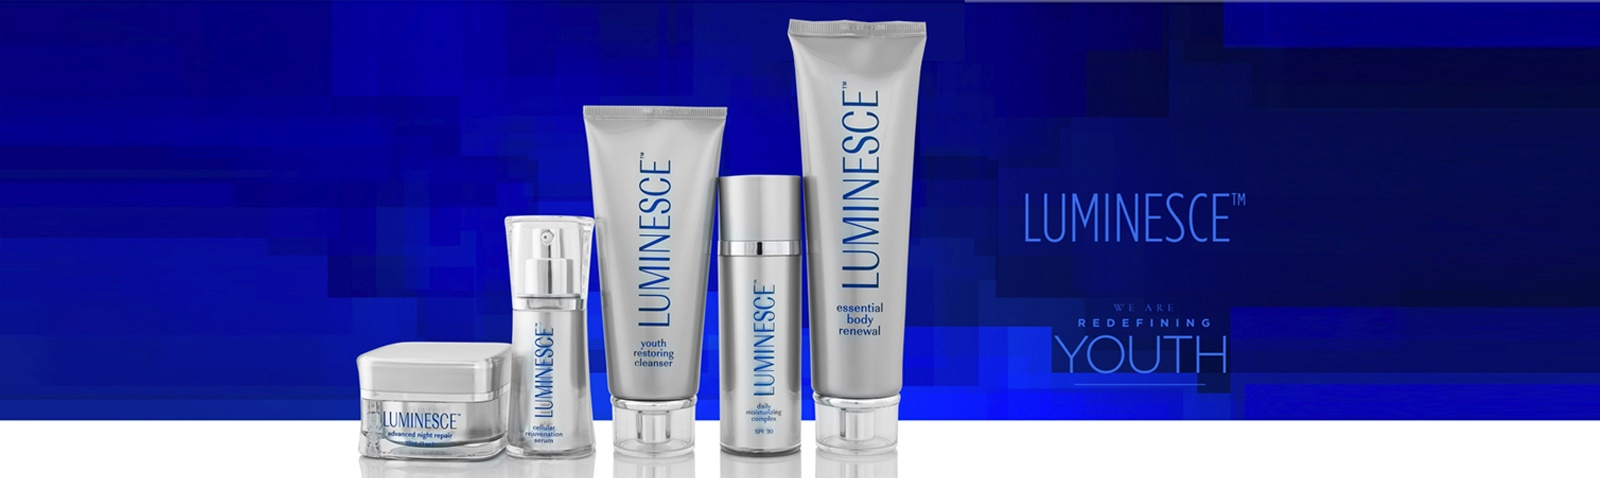 Luminesce-copy1